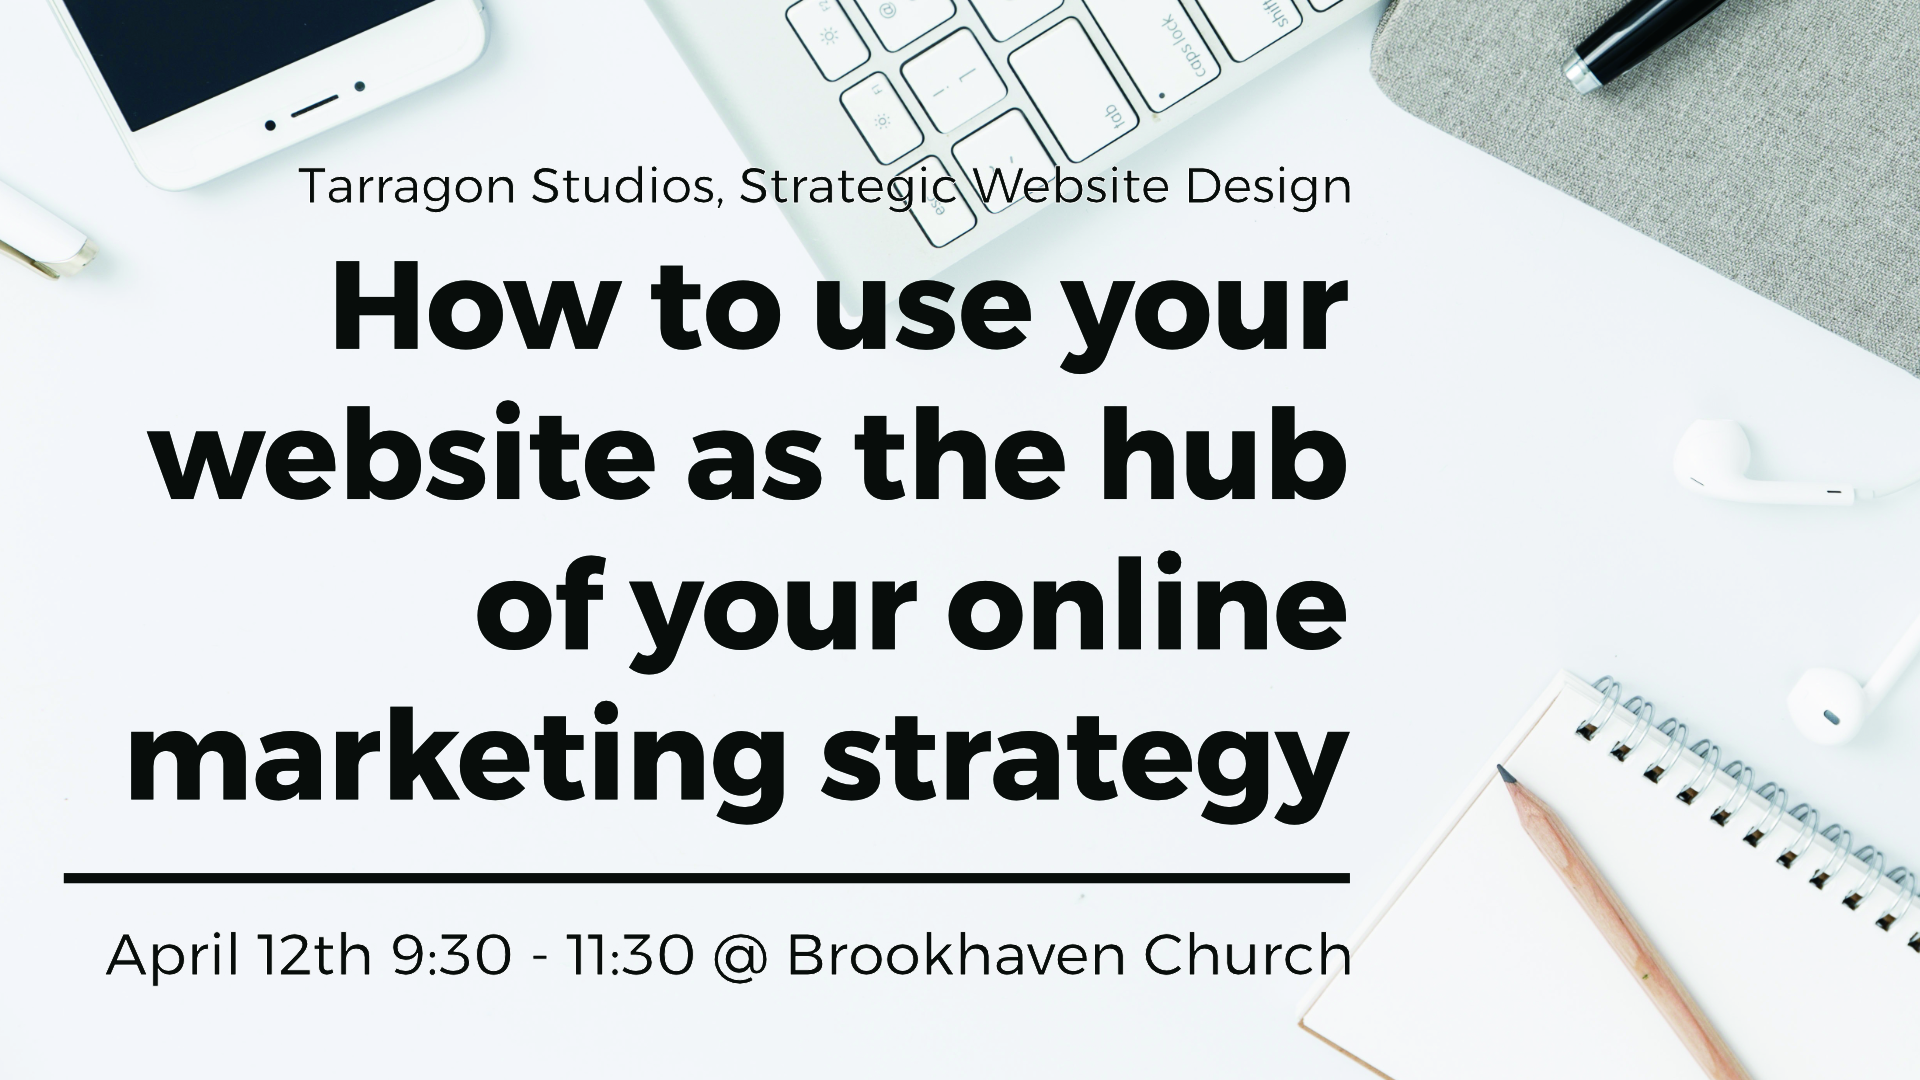 Website Strategy Event with Samantha McHone of Tarragon Studios